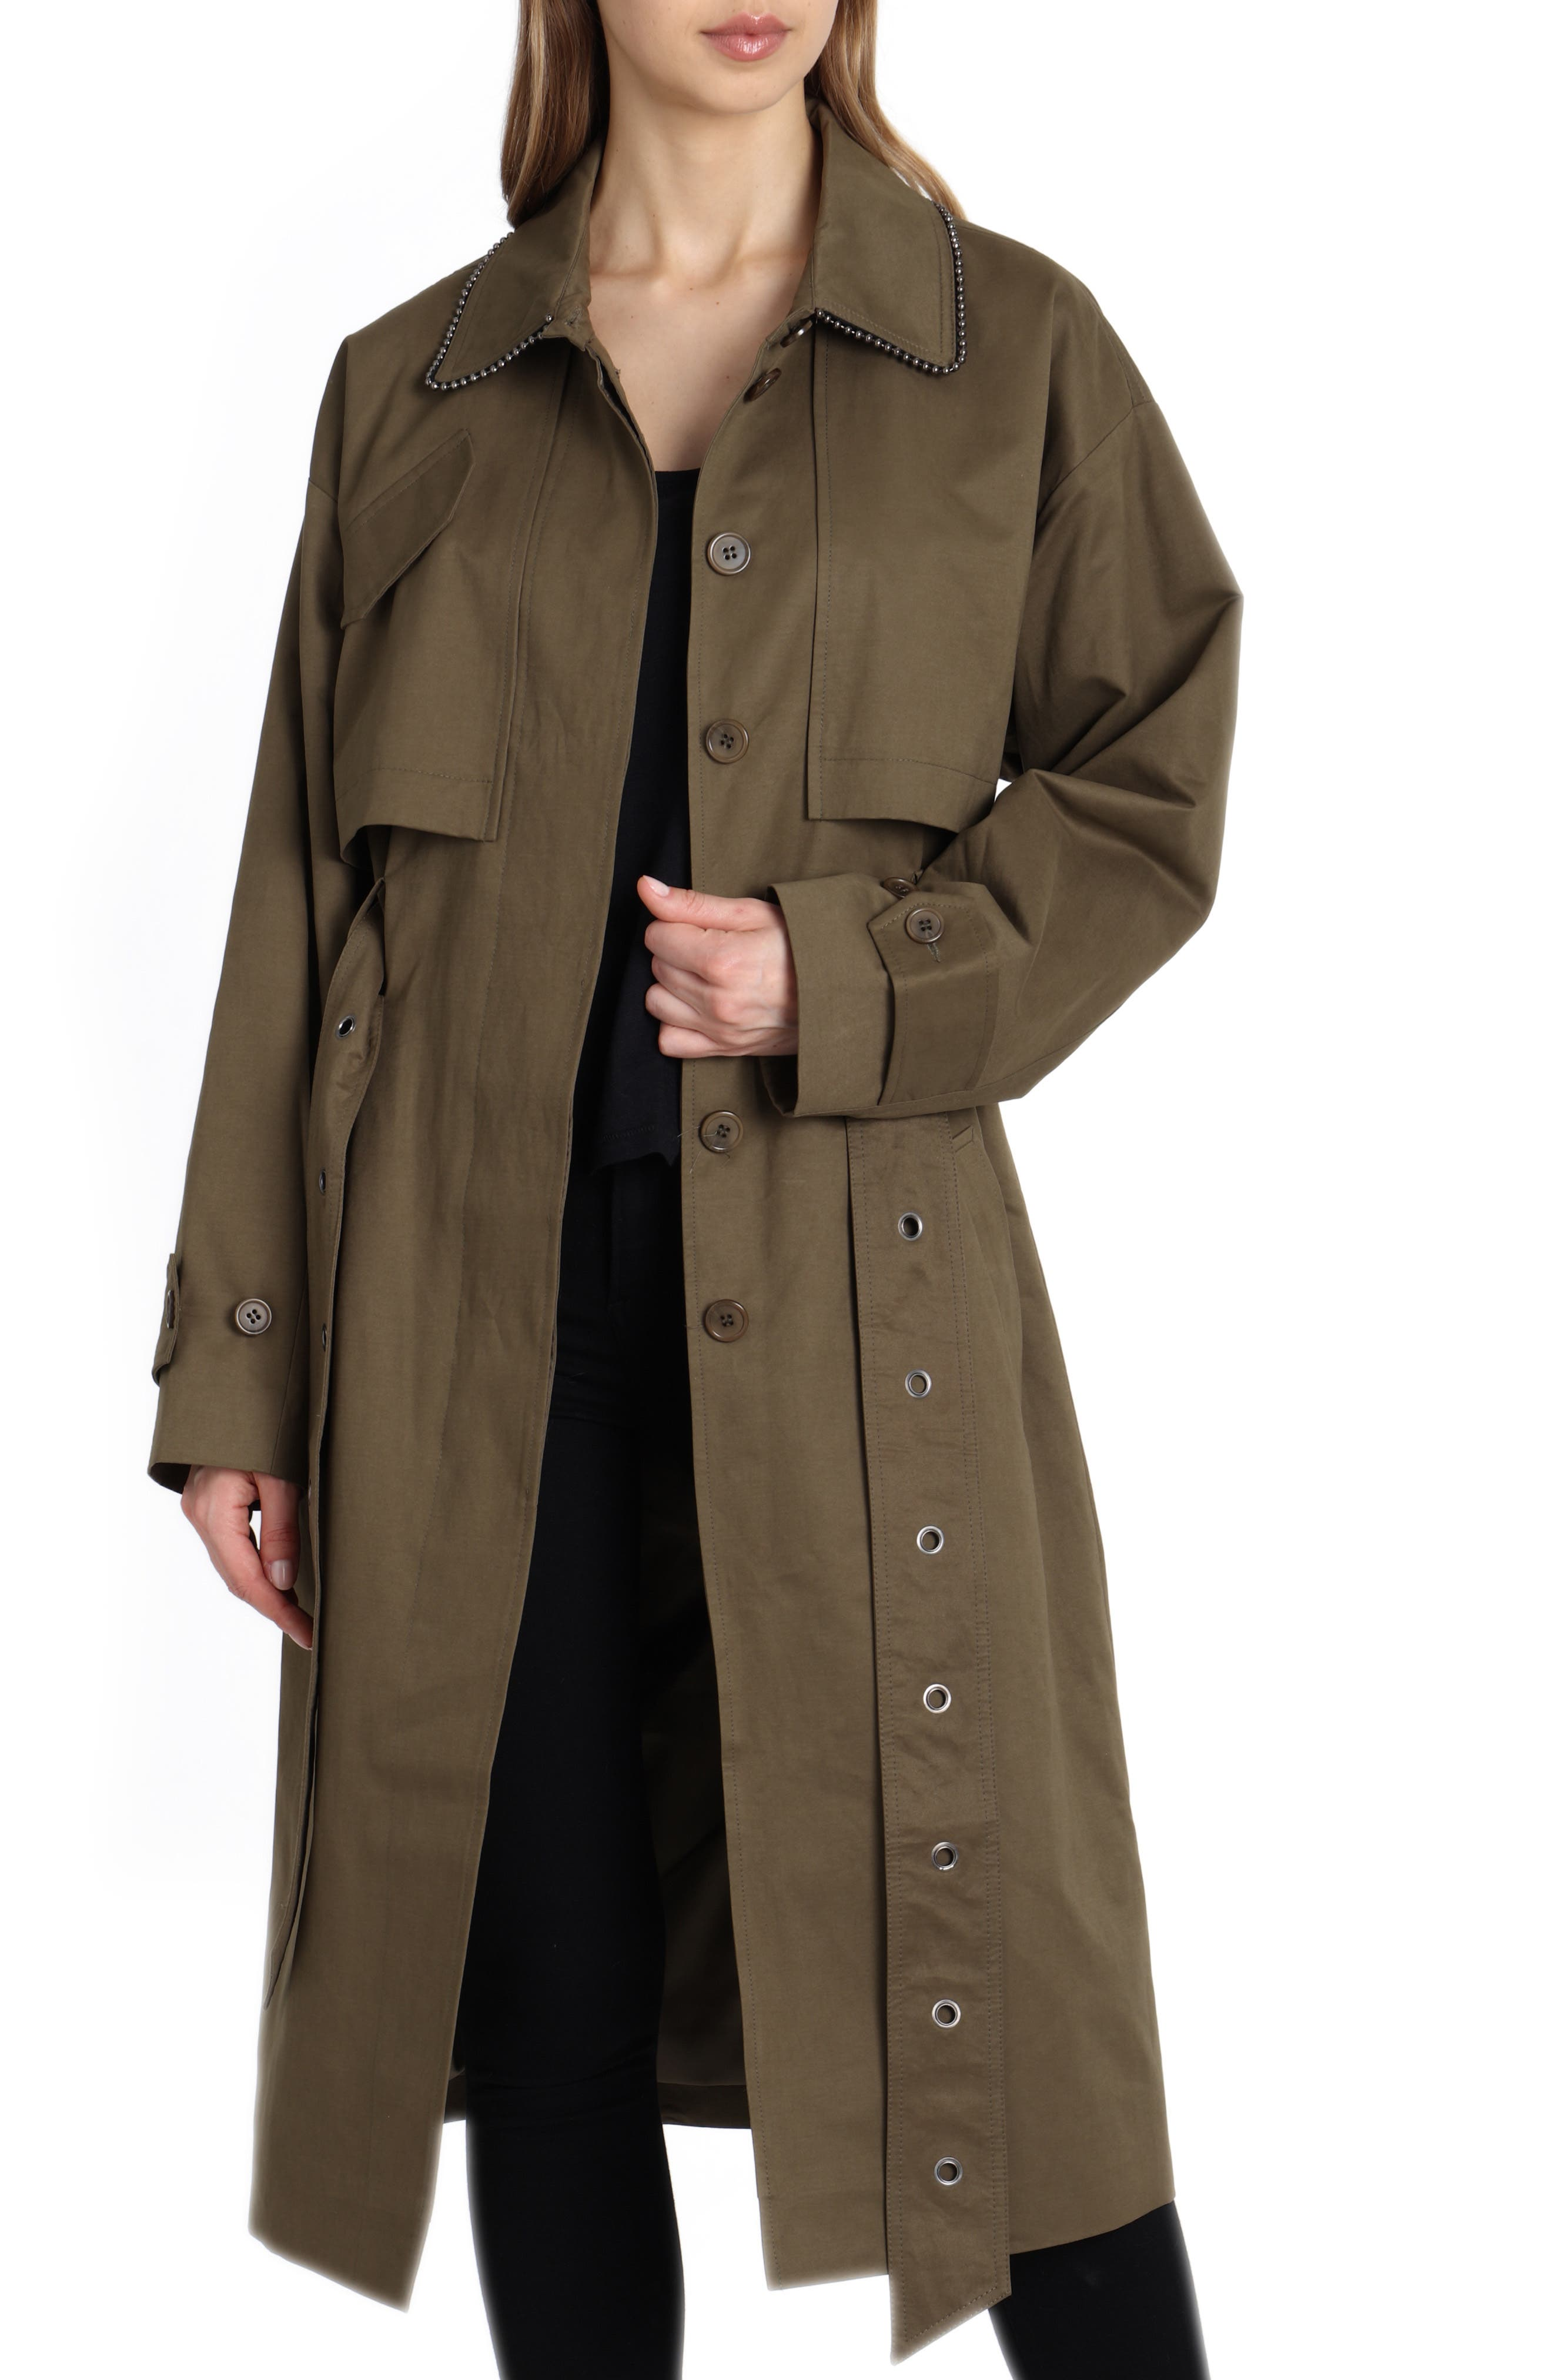 Badgley Mischka Cotton Blend Utility Trench Coat,                             Main thumbnail 1, color,                             301